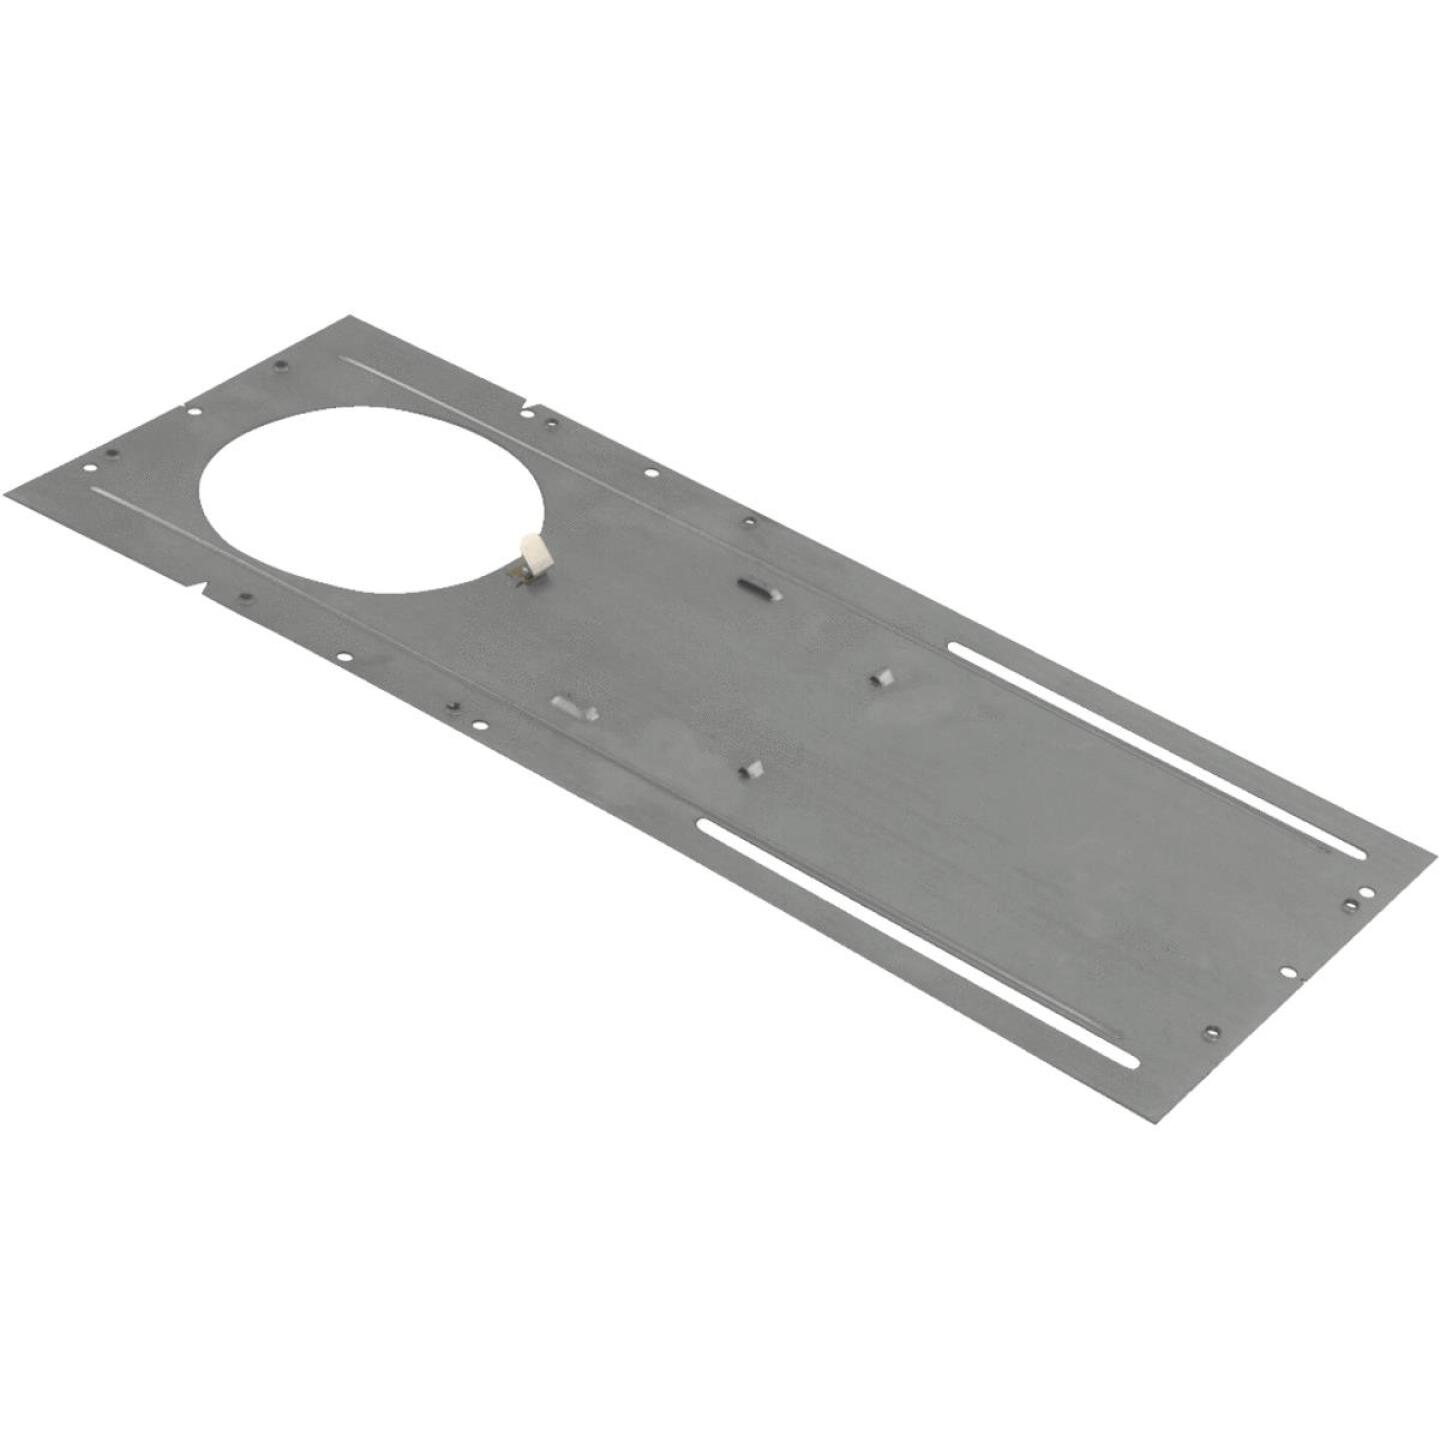 Liteline Trenz ThinLED 4 In. Round Recessed Fixture Mounting Plate Image 1